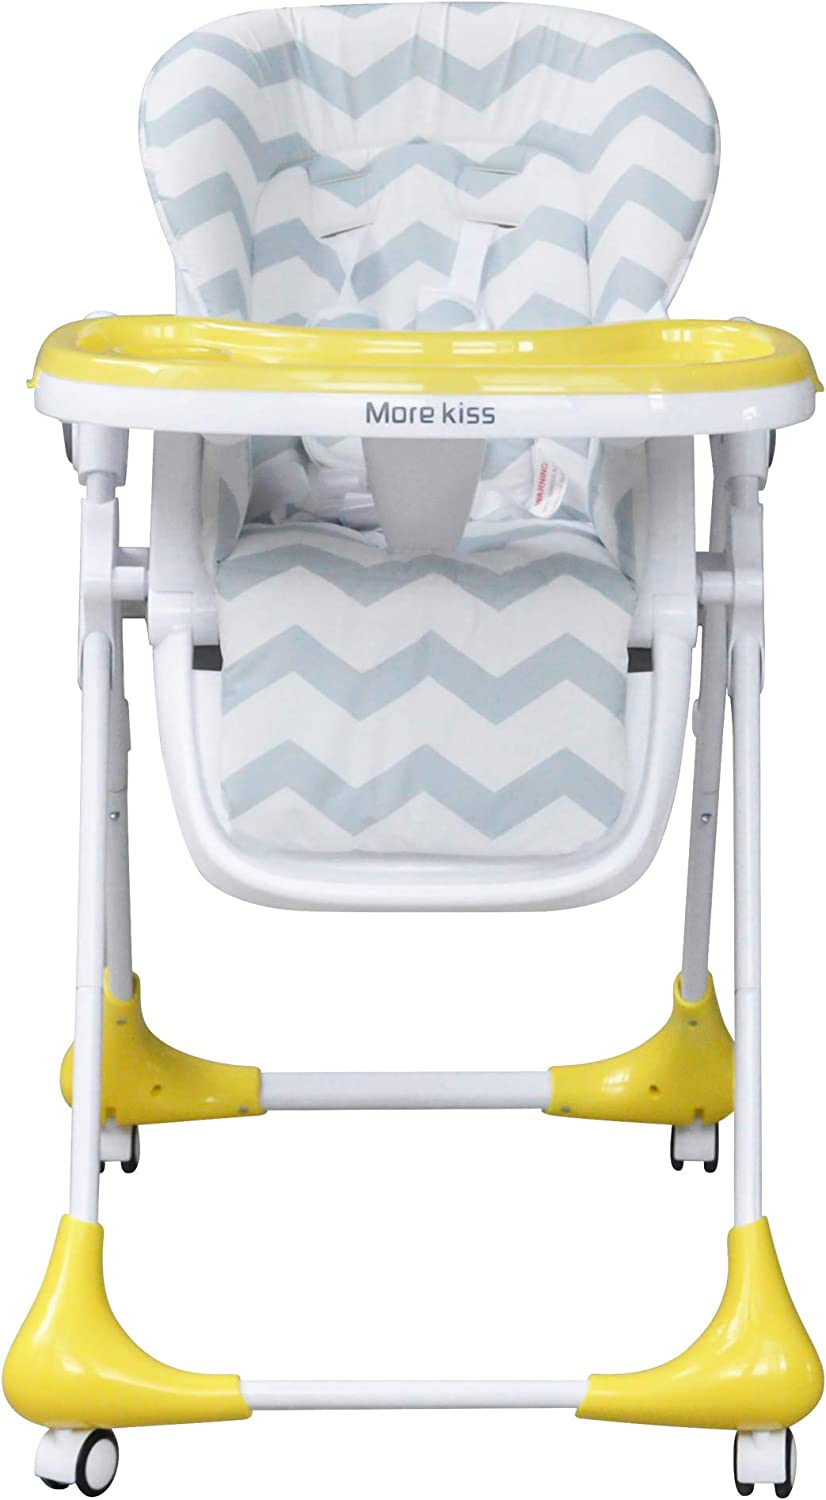 S.C Tech Baby High Chairs Foldable with 4 Wheels 7 Adjustable Heights for Dining Table Recline Highchair 5-Point Harness Seat Cushion and Tray Detachable